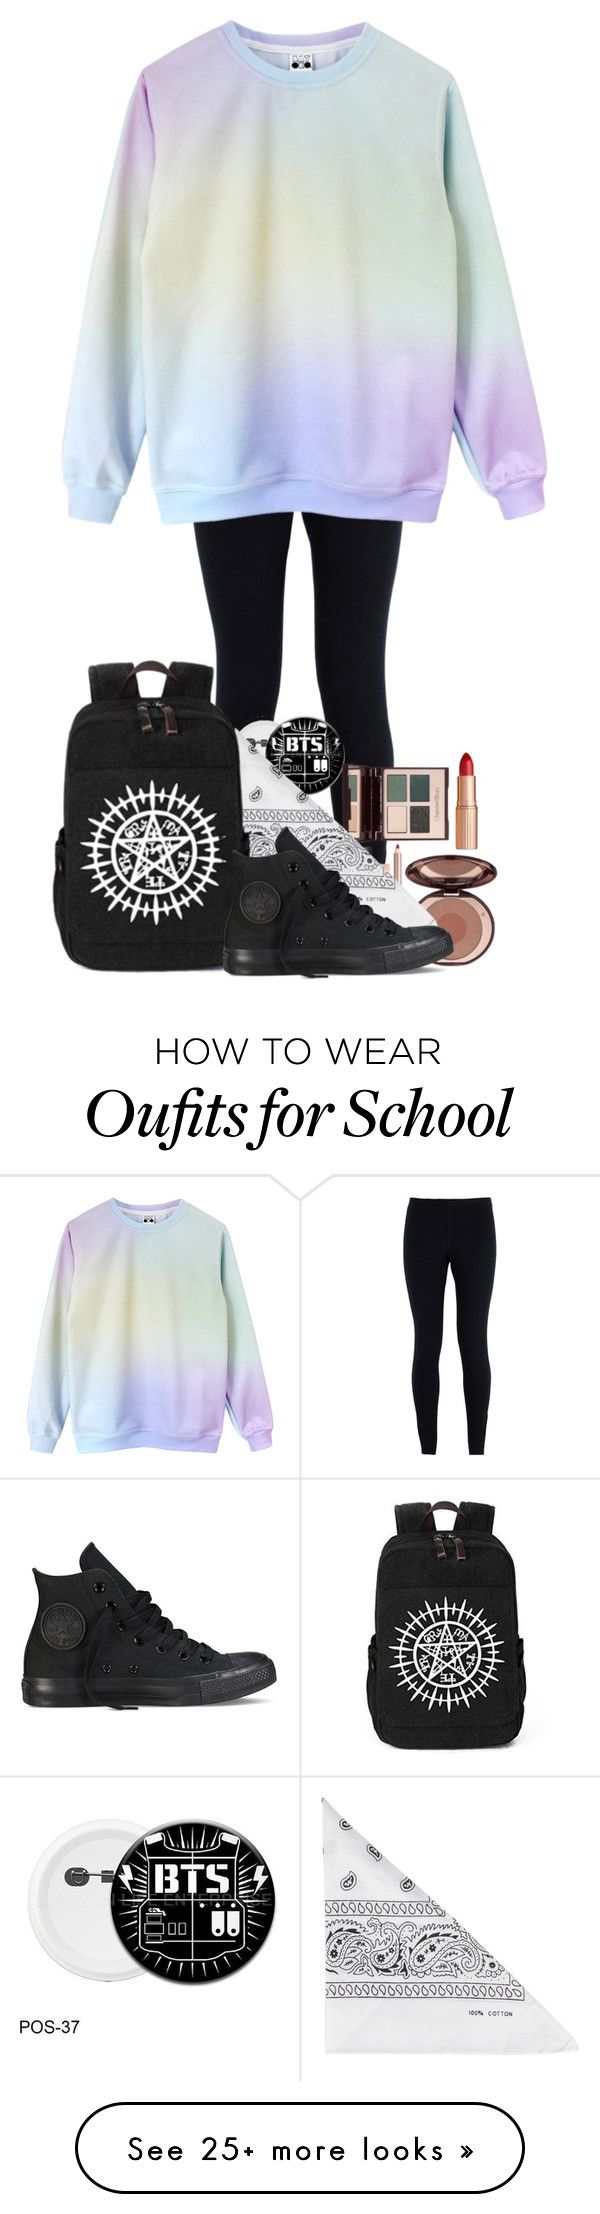 """""""Untitled #356"""" by londoner6401 on Polyvore featuring NIKE, Charlotte Tilbury, NLY Accessories and Converse"""